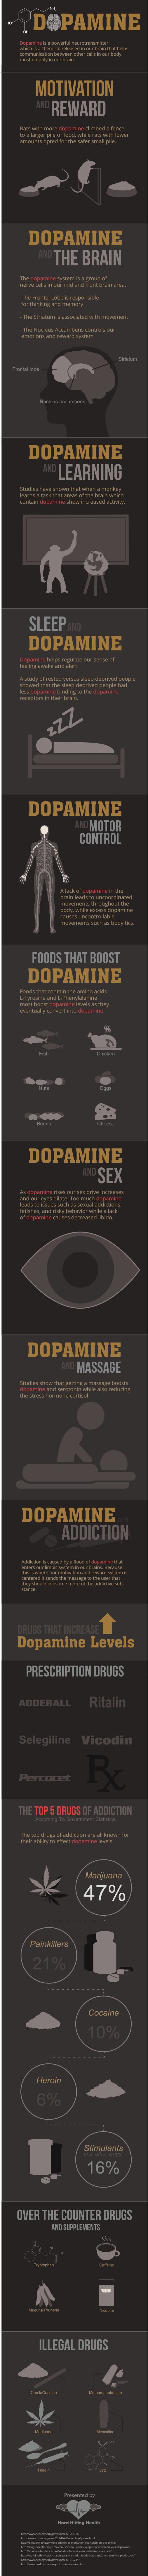 Dopamine is a chemical that is released in our brains in times of motivation, excitement, and danger. It is a neurotransmitter that helps the cells in our body communicate with each other. We can also experience a dopamine release when we have sex, take drugs, and eat certain foods. In this infographic, learn 12 facts about this natural drug in your brain you may have not known.